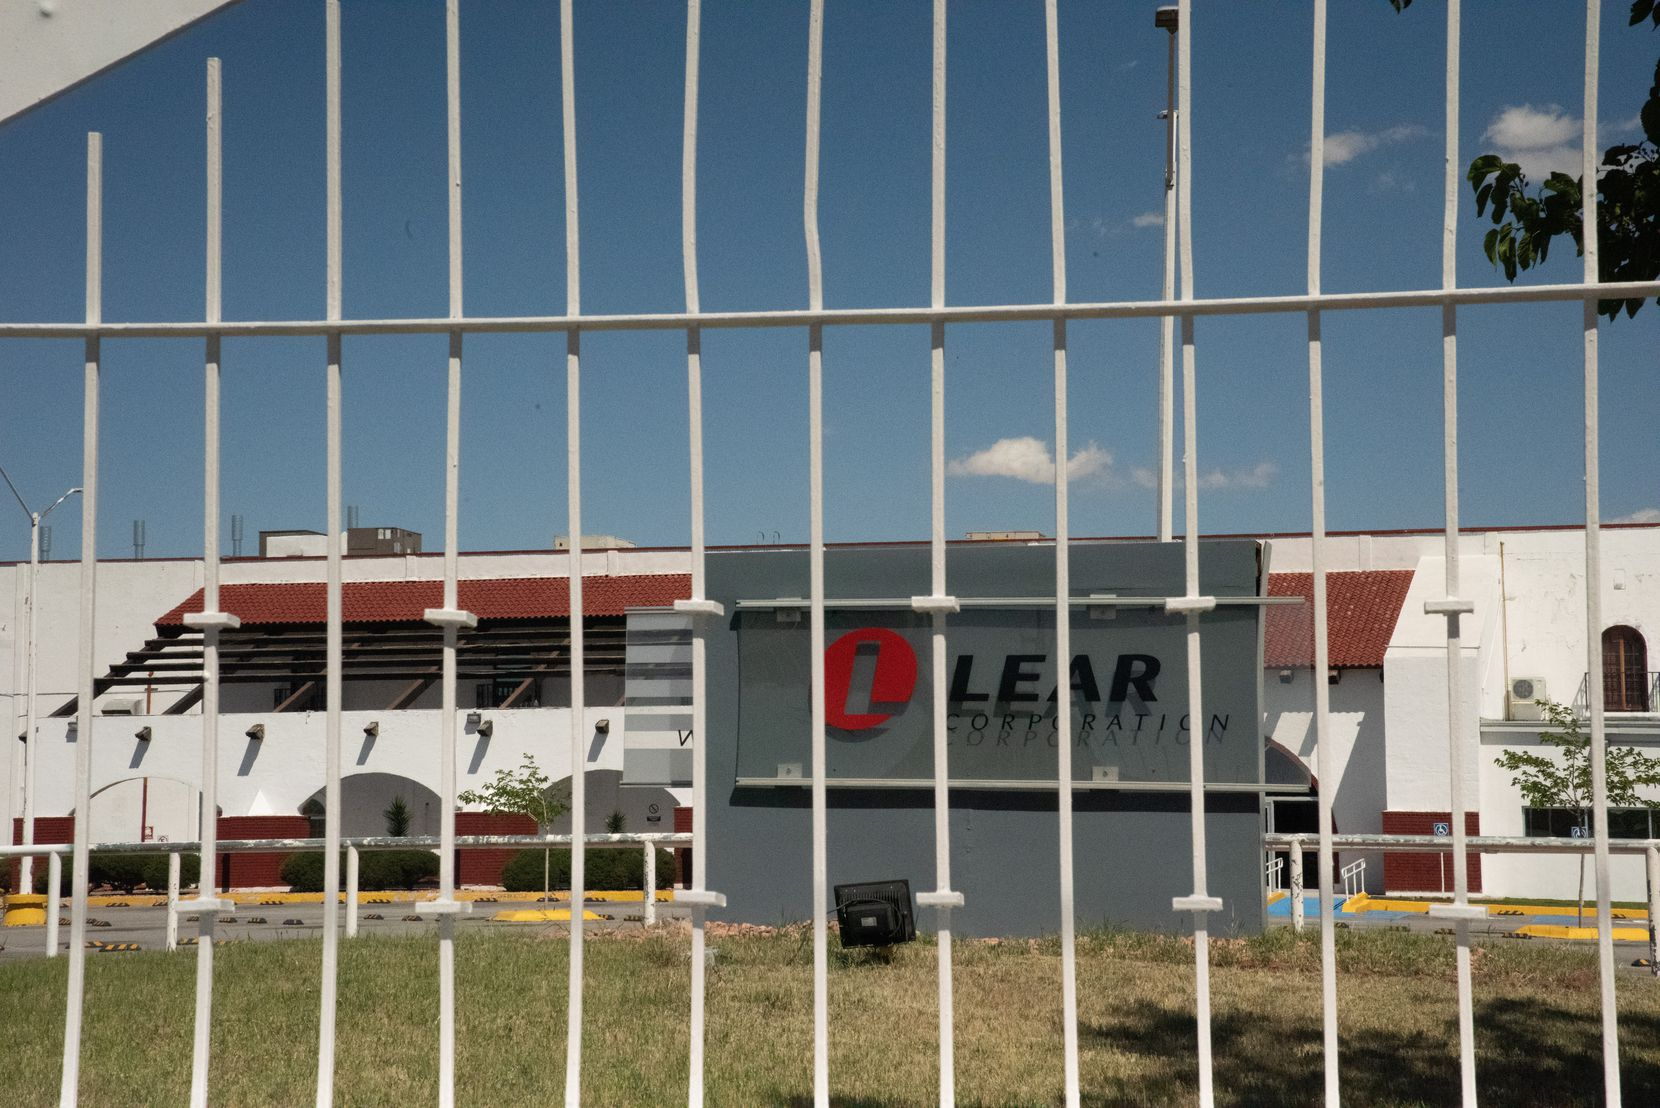 Amid the rising number of victims of COVID-19 at U.S.-owned assembly plants in Ciudad Juárez, Michigan-based Lear Corp. has been hit hard. On Tuesday, April 14, 2020, one of Lear s plants, found on the Paseo Triunfo de la Republica Avenue, is seen closed.